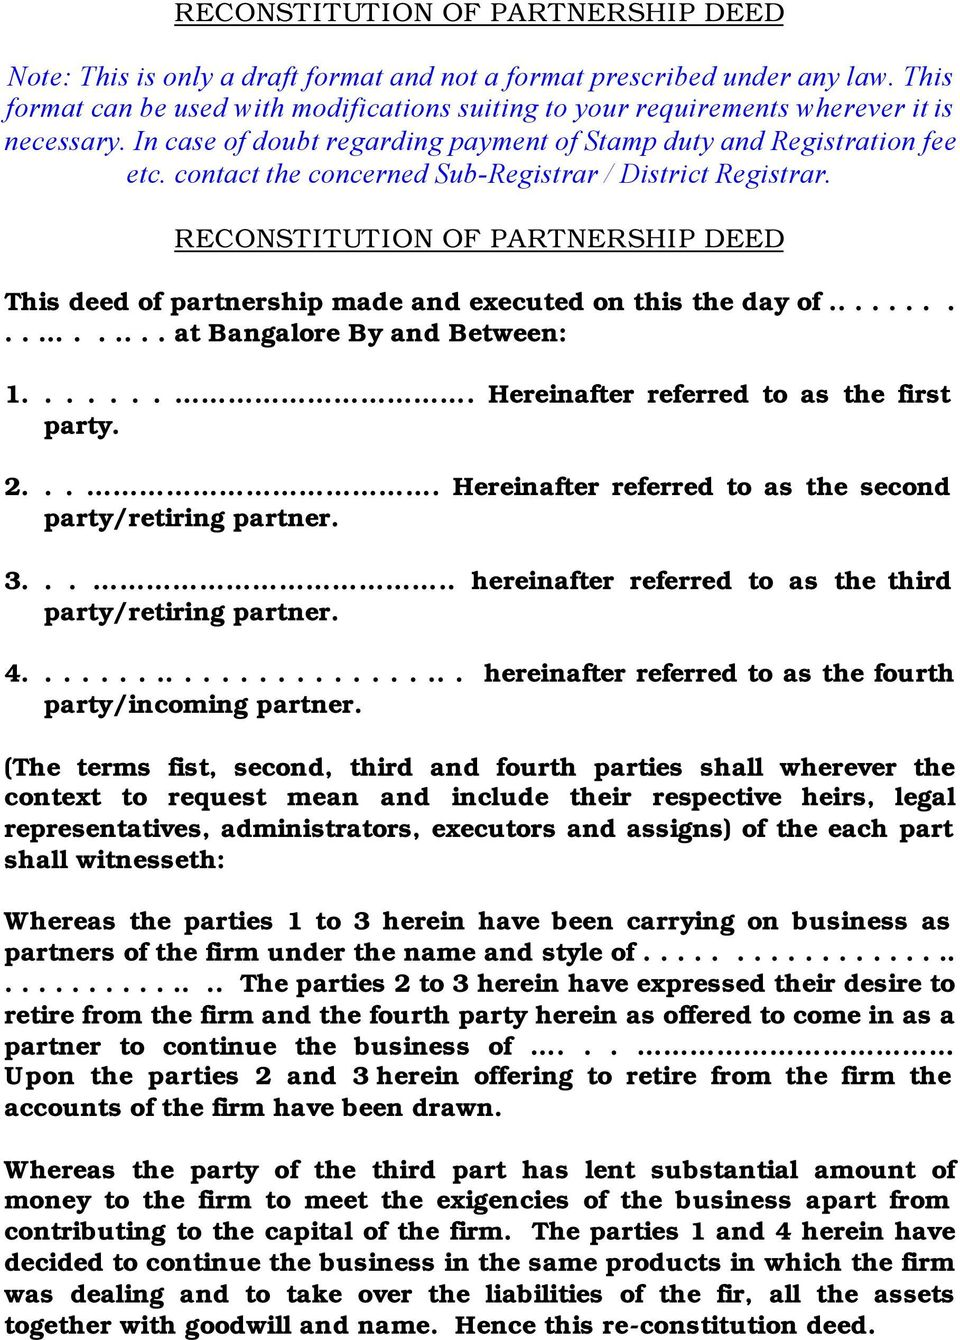 Reconstitution of partnership deed reconstitution of partnership contact the concerned sub registrar district registrar reconstitution of partnership deed this deed thecheapjerseys Images